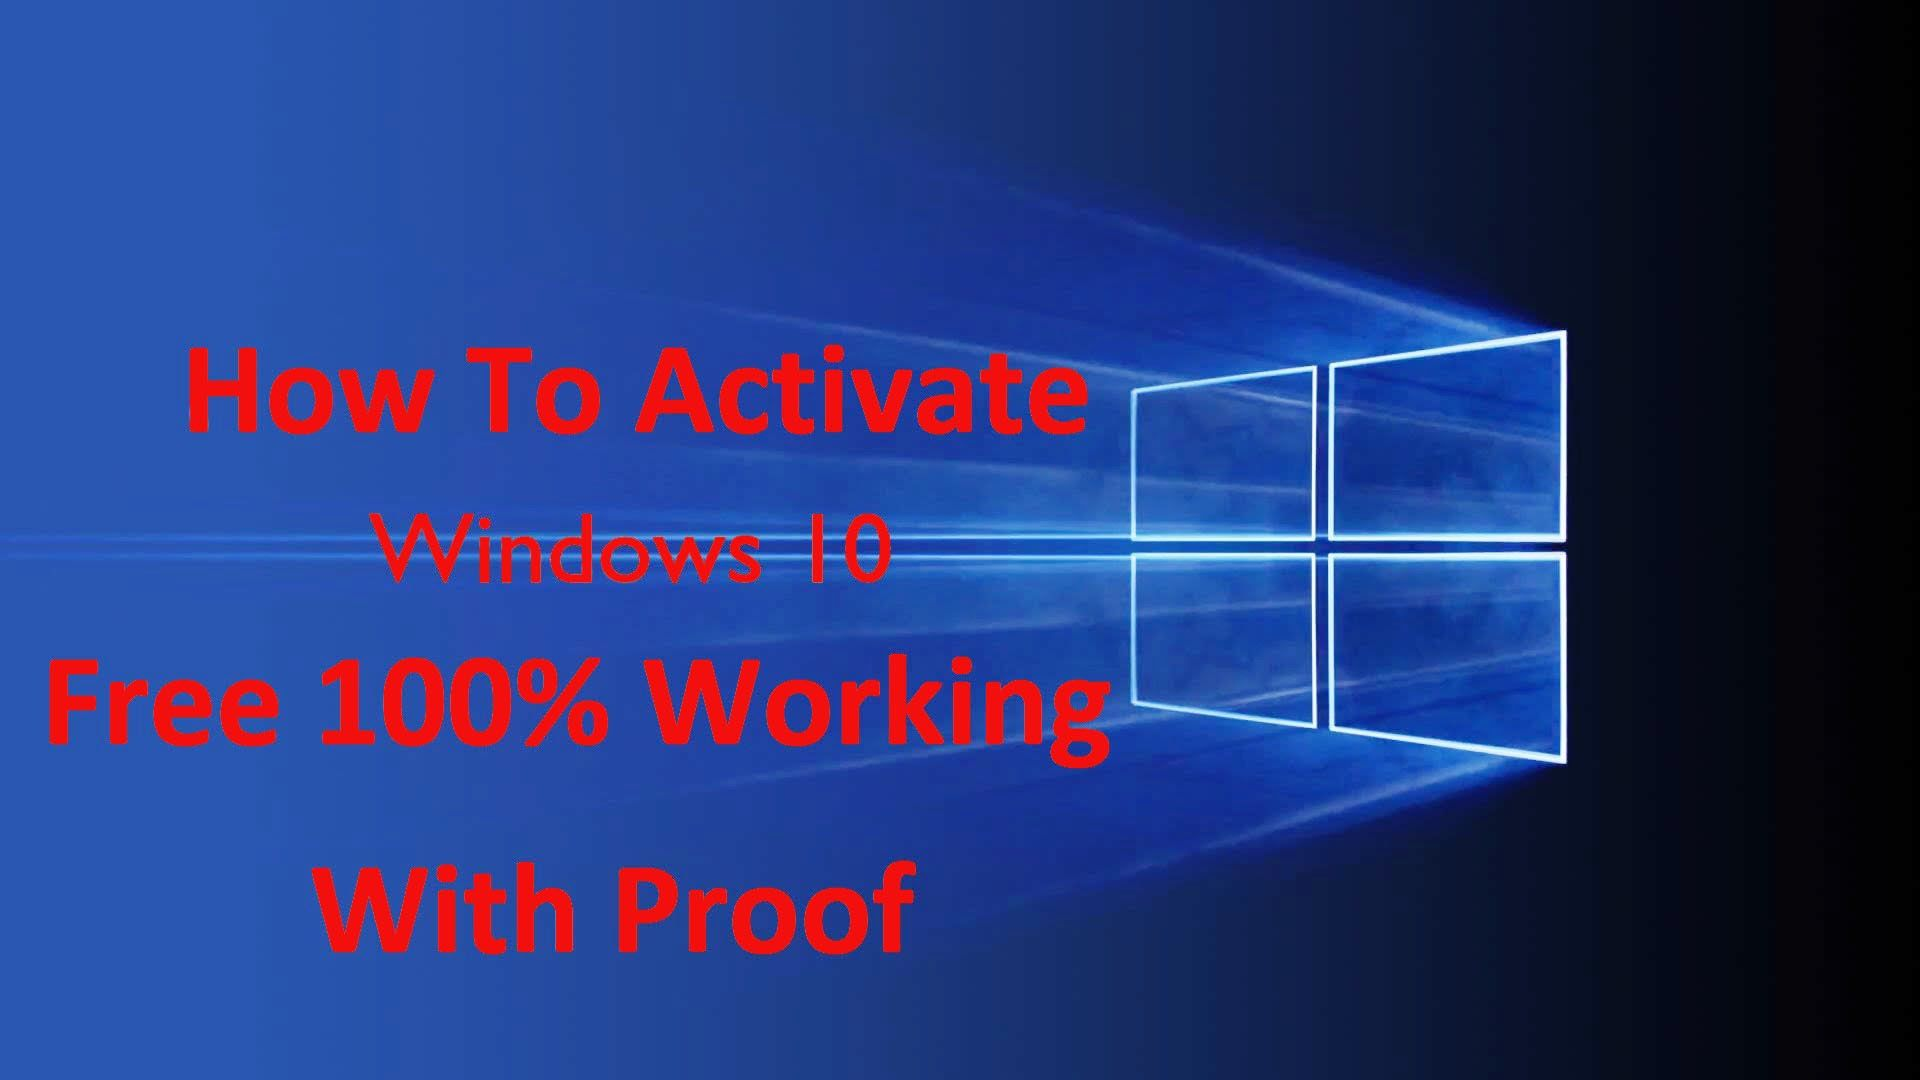 How To Activate Windows 10 Anniversary Update 2016